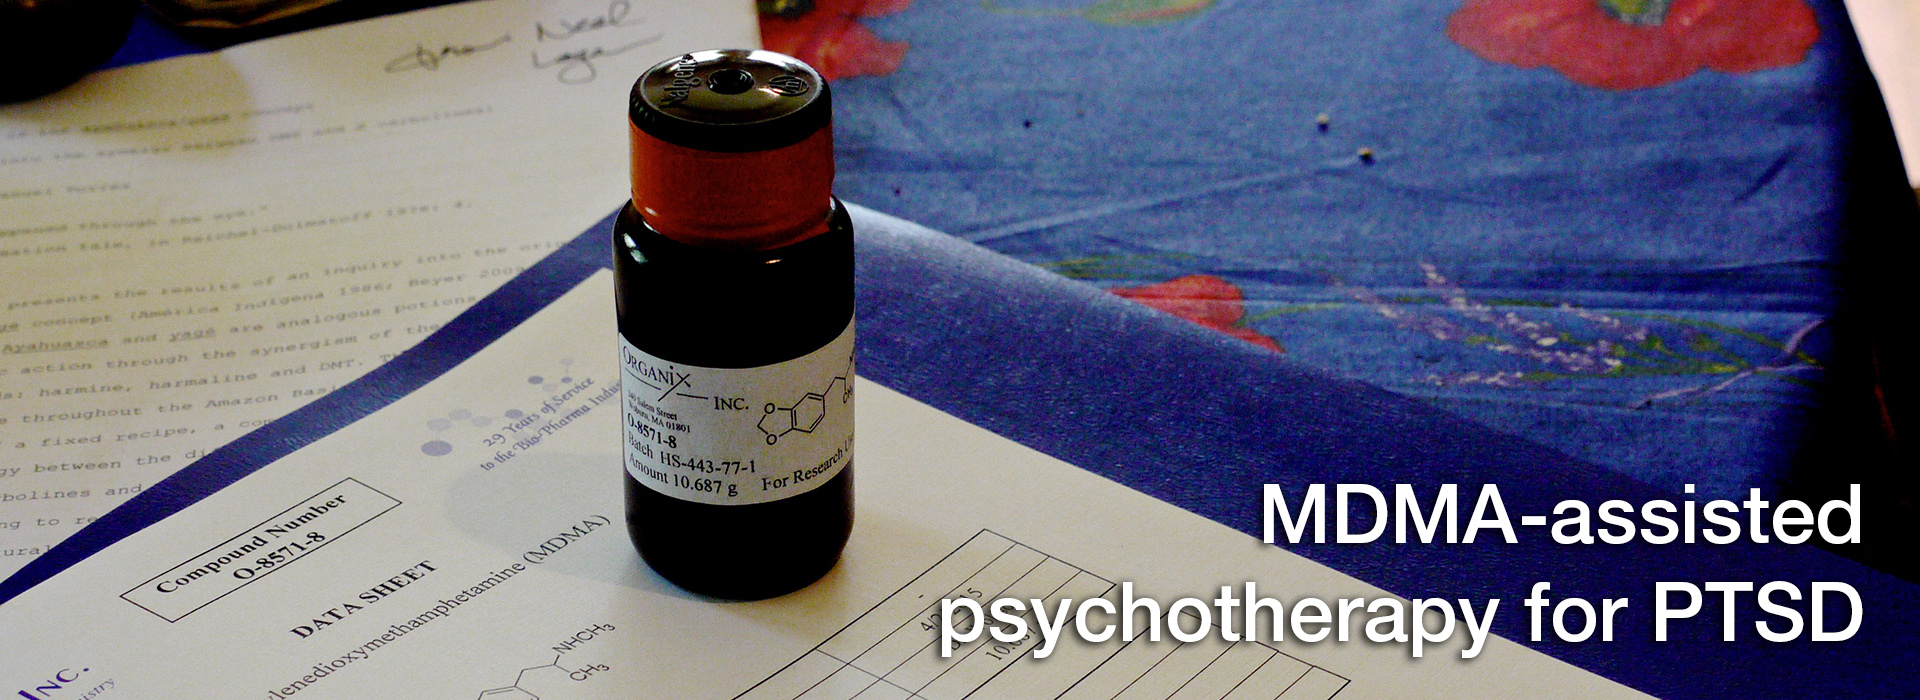 mdma aided psychotherapy explore paper